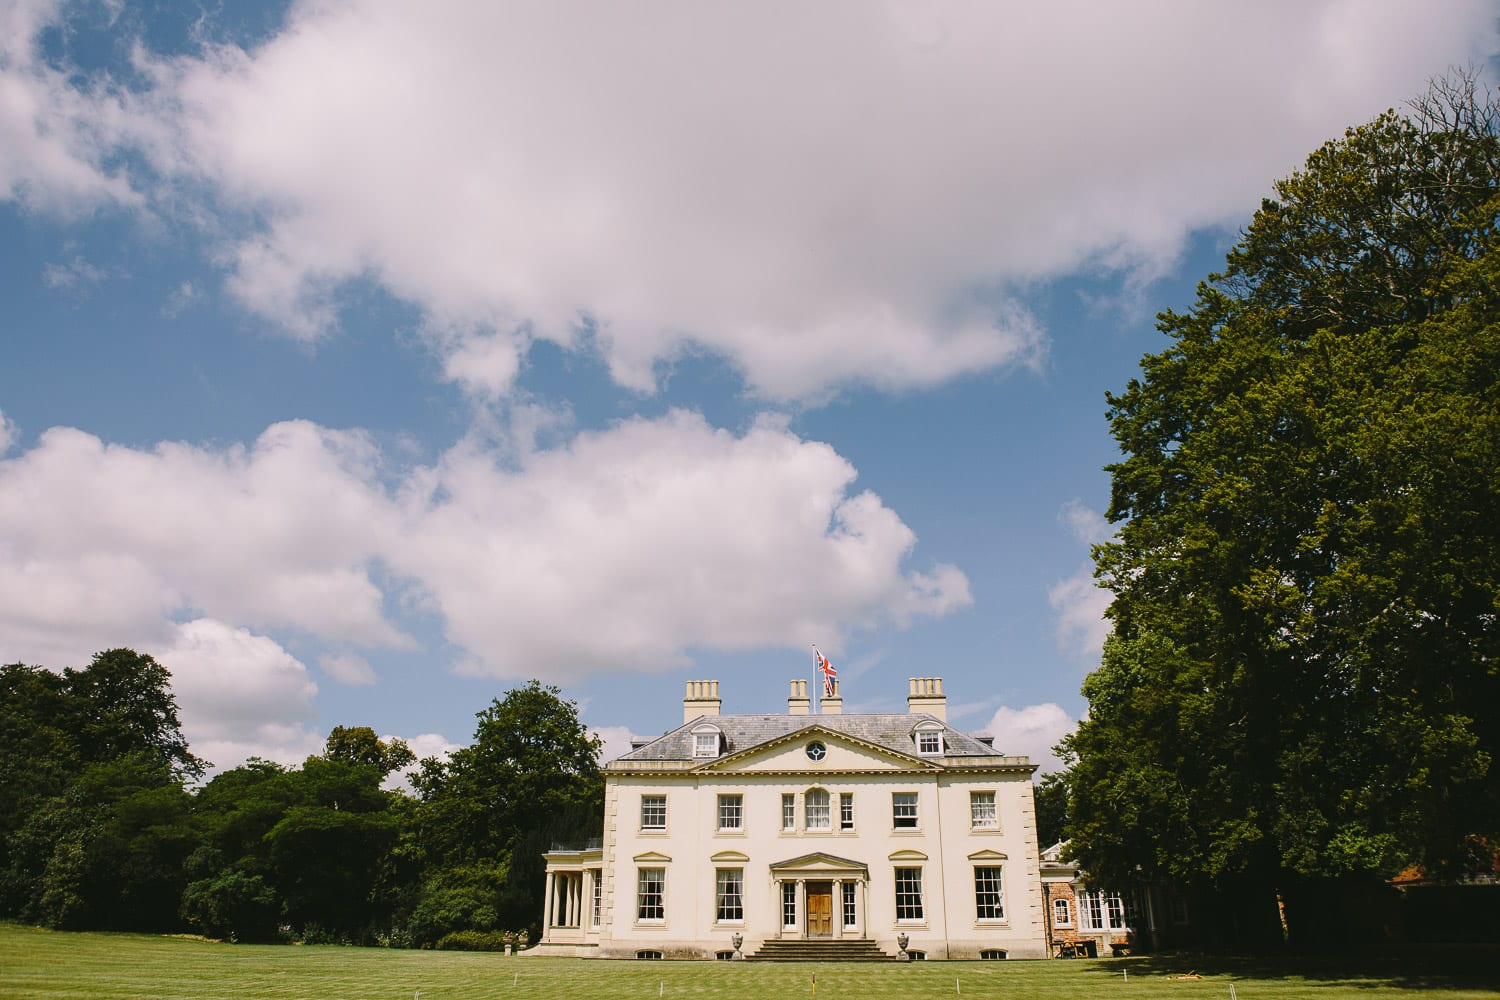 Wiltshire wedding venue, Rockley Manor